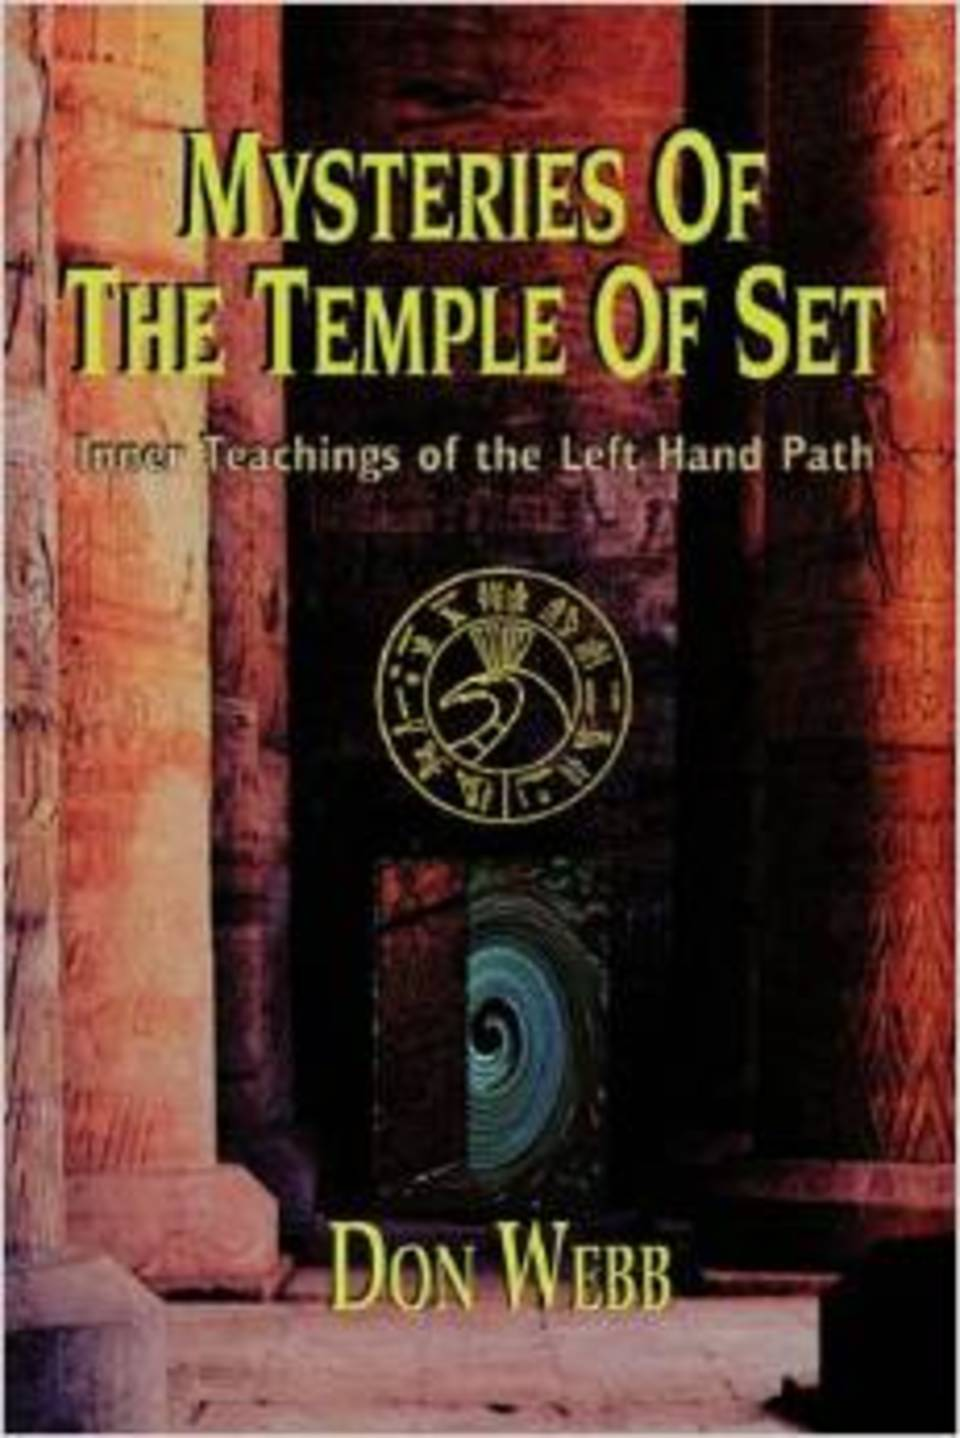 Mysteries of the Temple of Set: Inner Teachings of the Left Hand Path •  by Don Webb